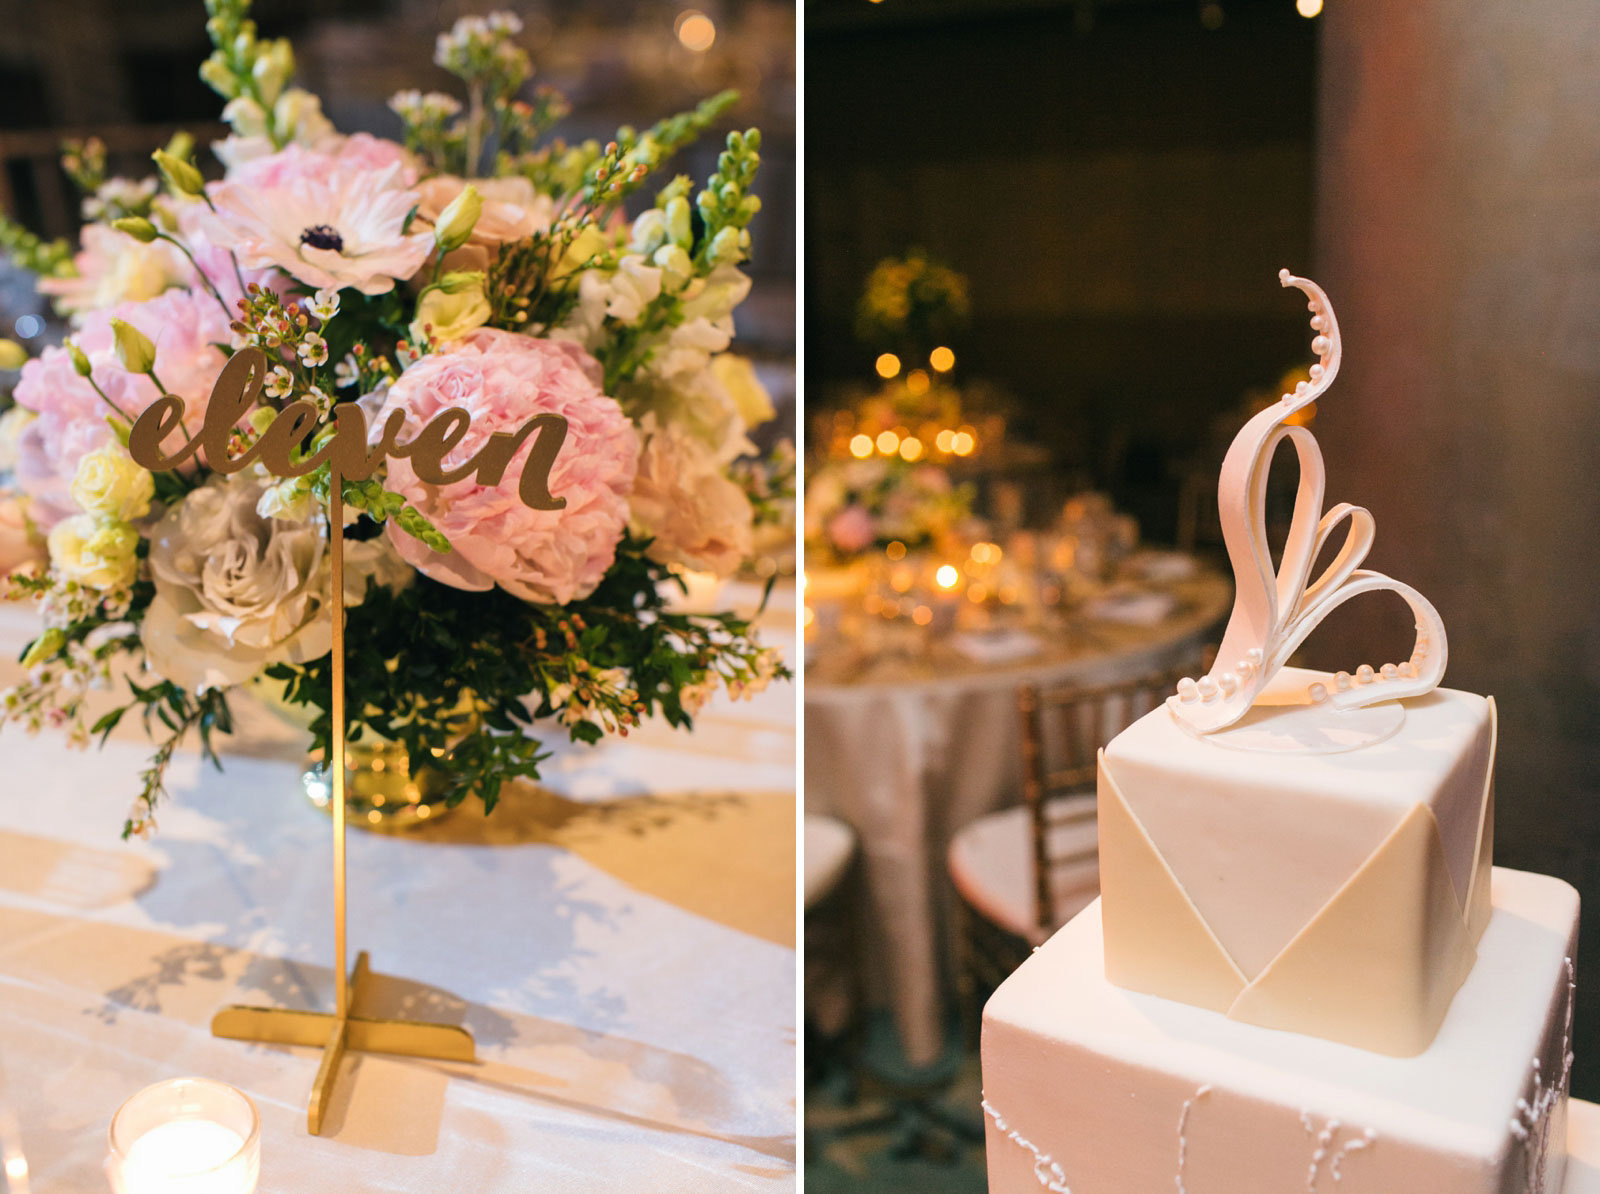 Gold calligraphy table number stands, pink and green pastel florals, elegant modern wedding cake